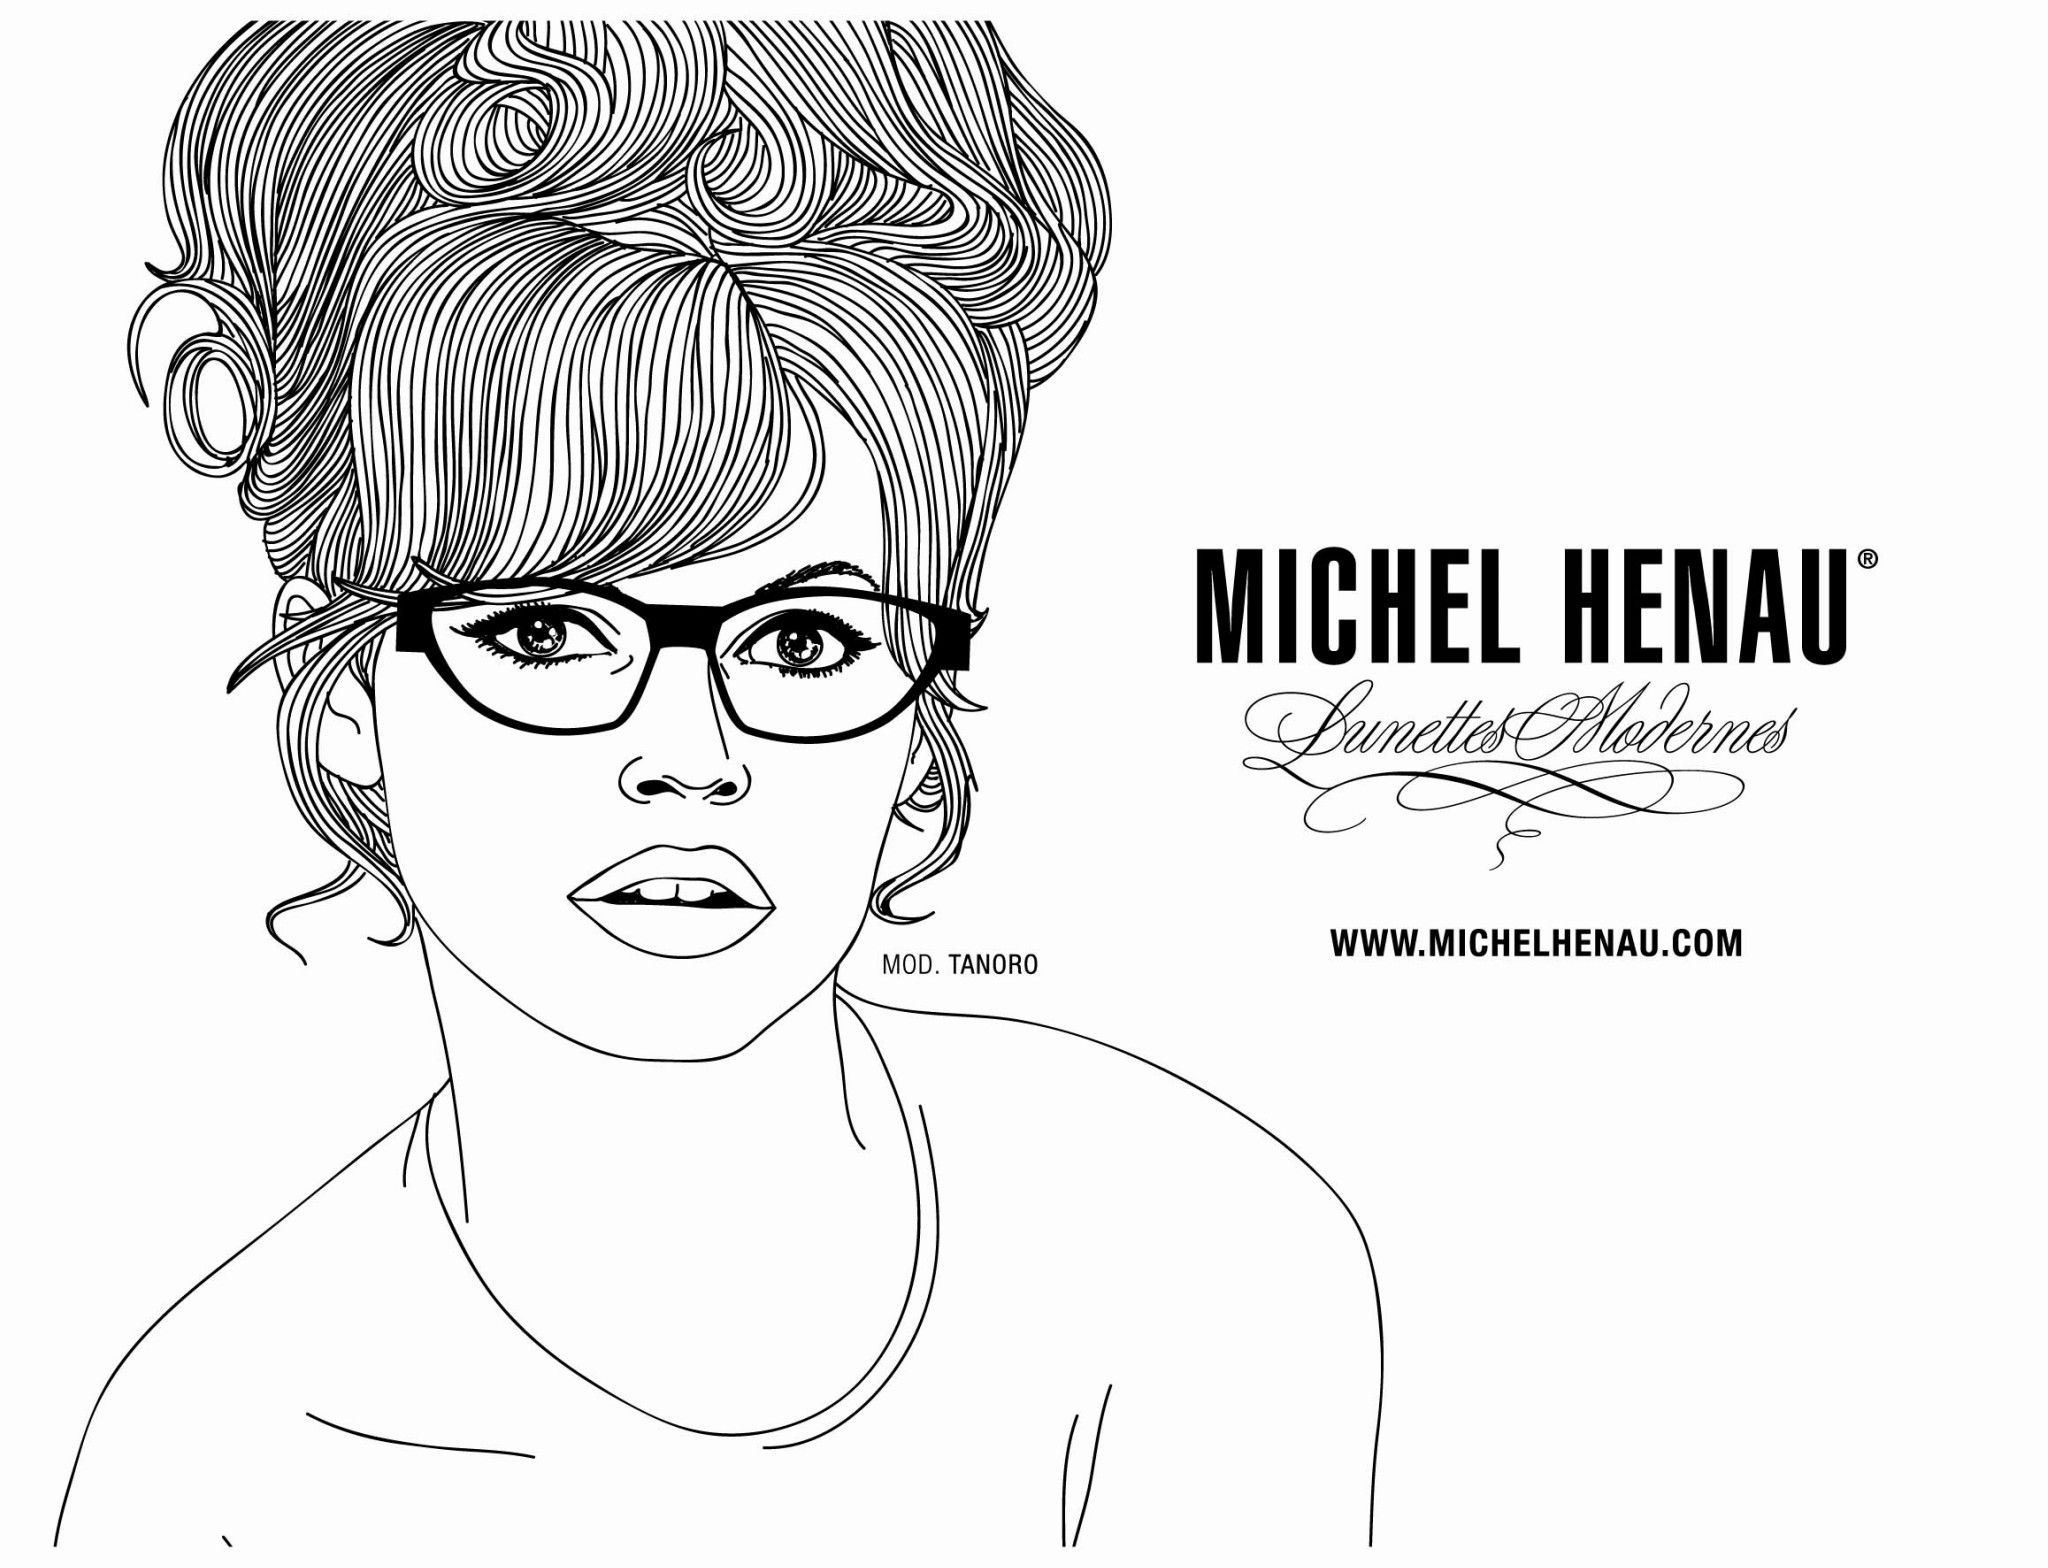 Michel Henau is a Belgian eyewear brand specialising in vintage designs that have been reimagined in a futuristic way. Their latest campaign features celebs of the past wearing the brand's glasses frames. We especially love their round designs.